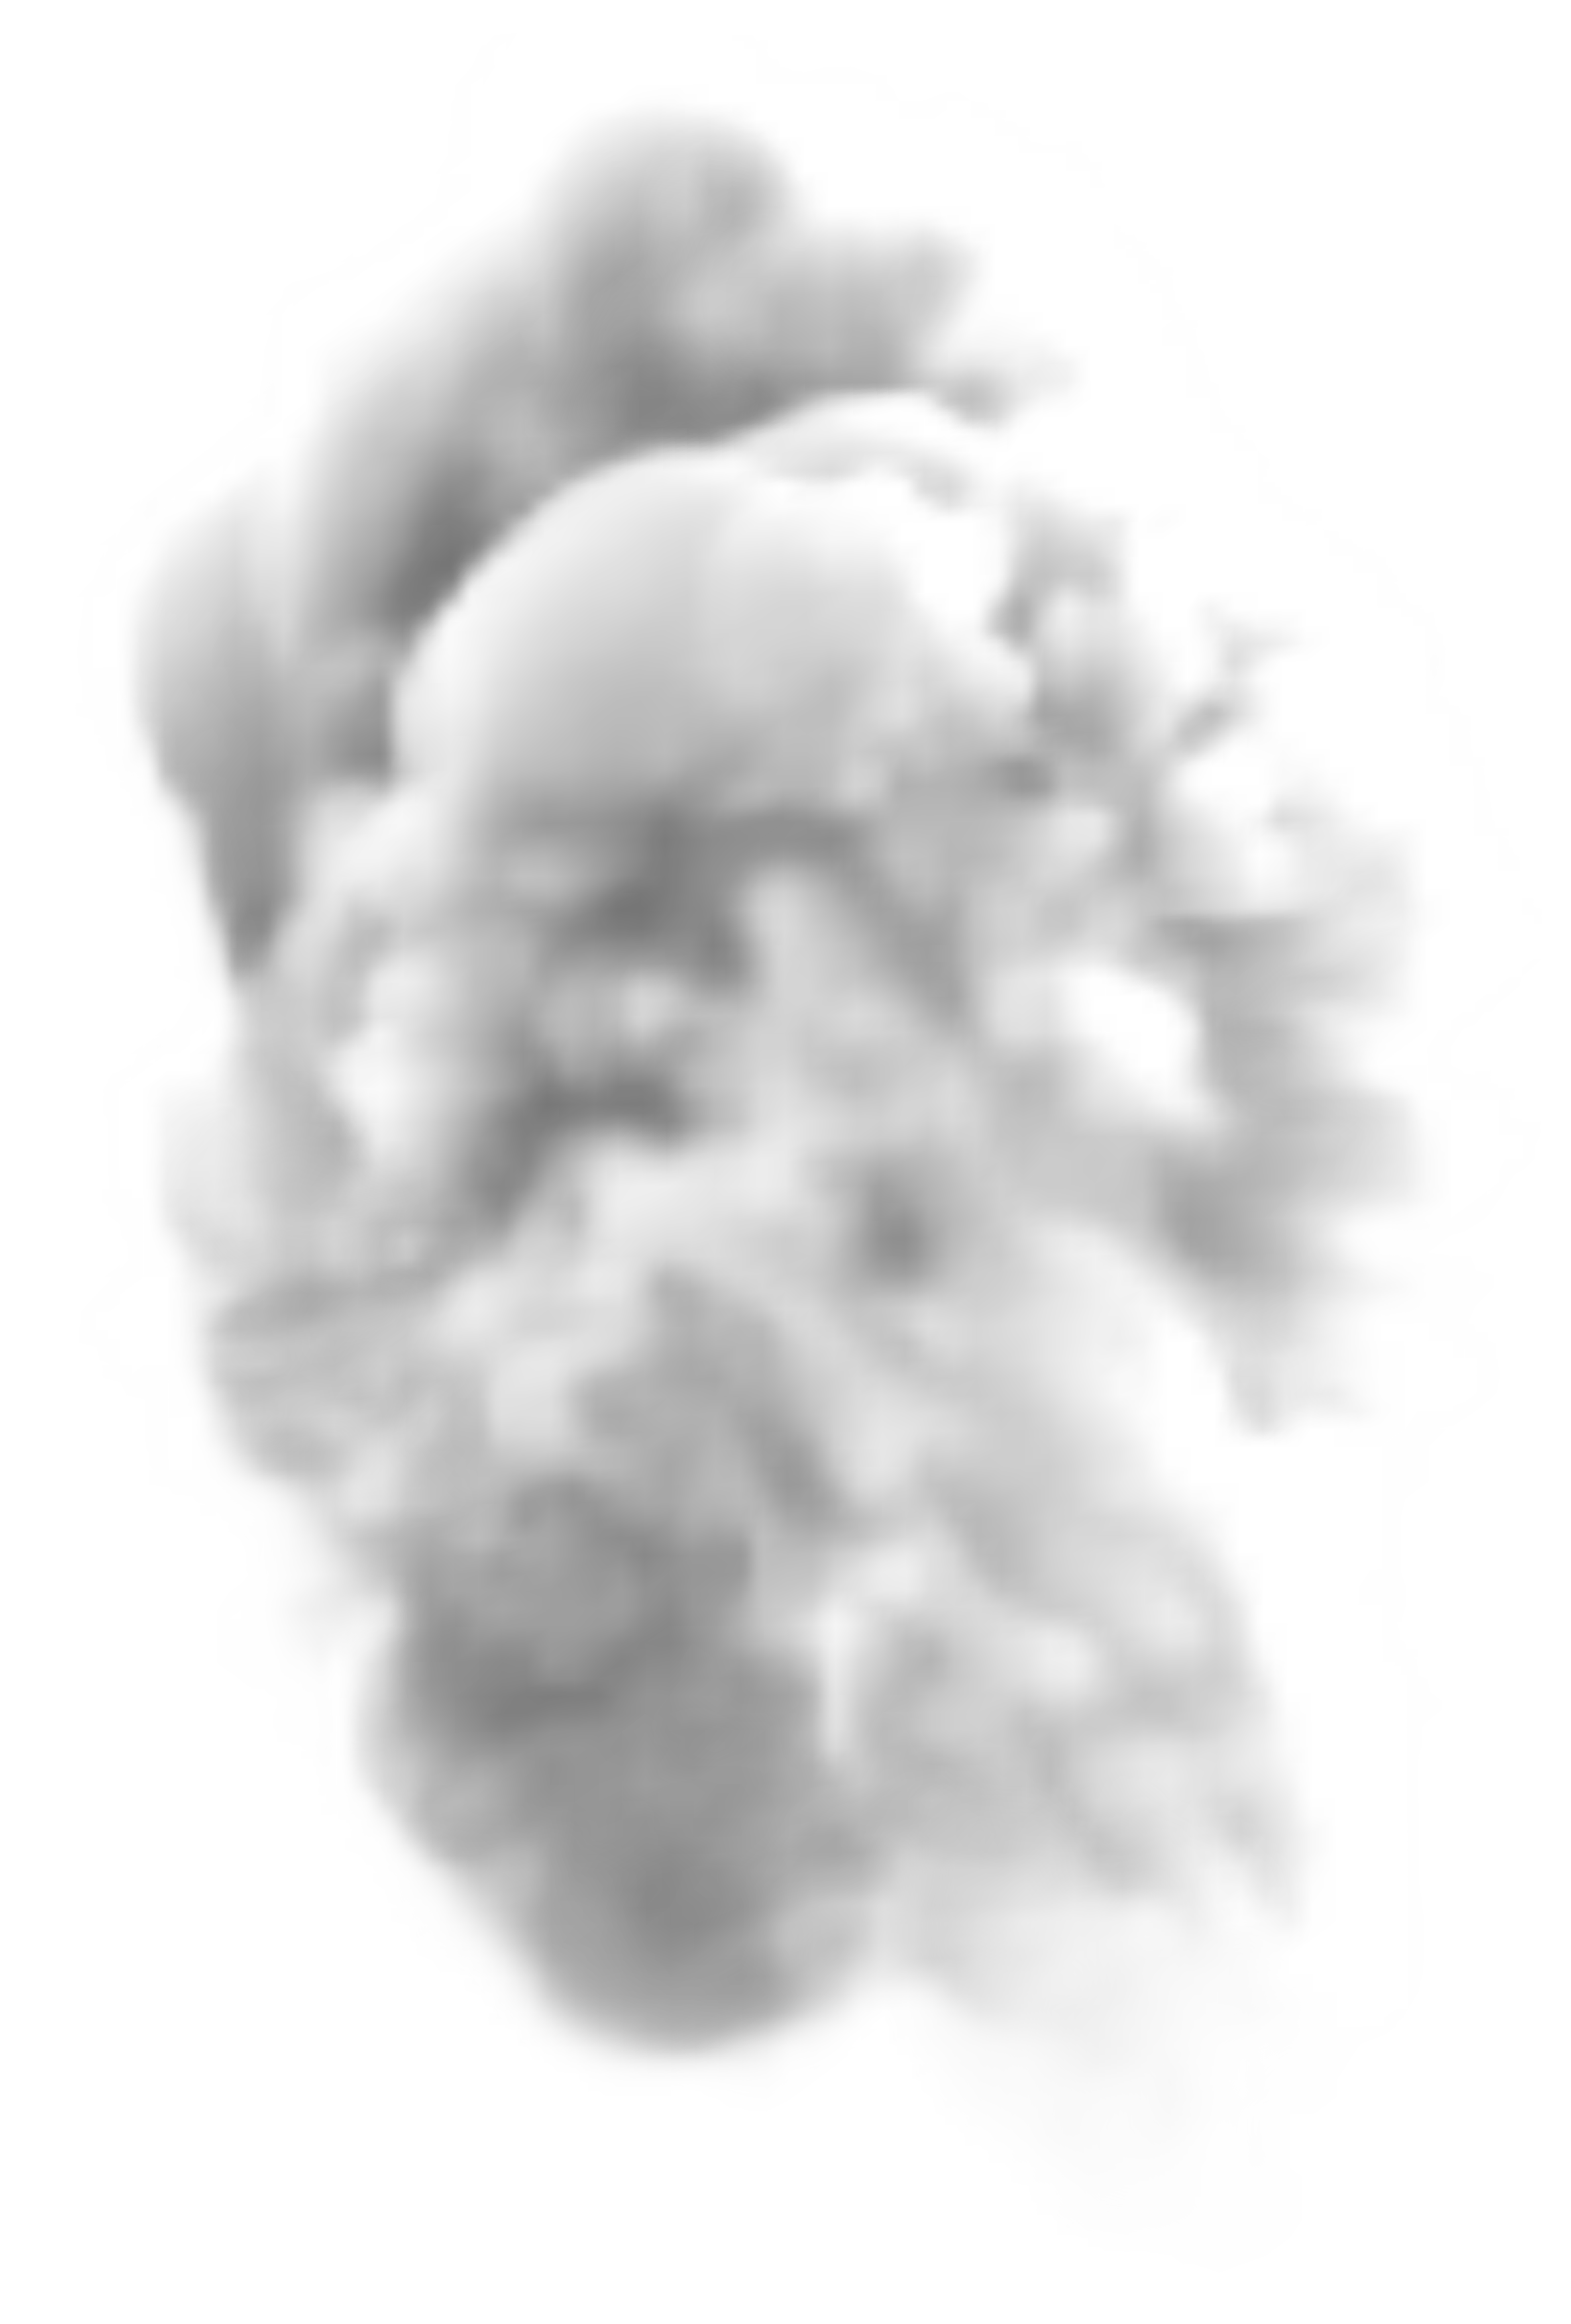 Free smoke png. Transparent clipart image gallery